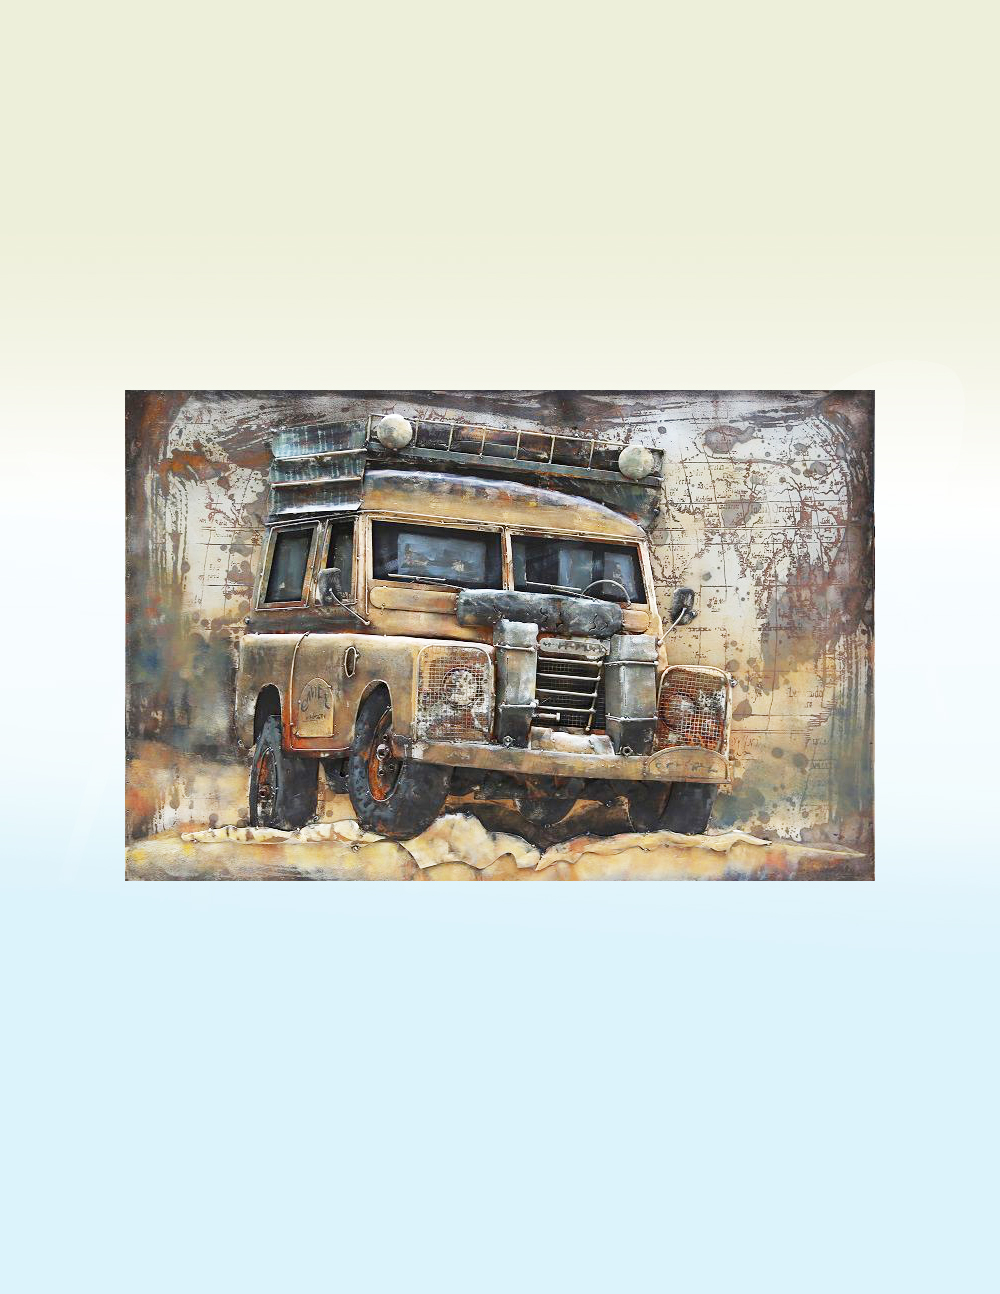 MEAR 55 3D Metal Wall Art Jeep Sculpture Avant Garden Guernsey